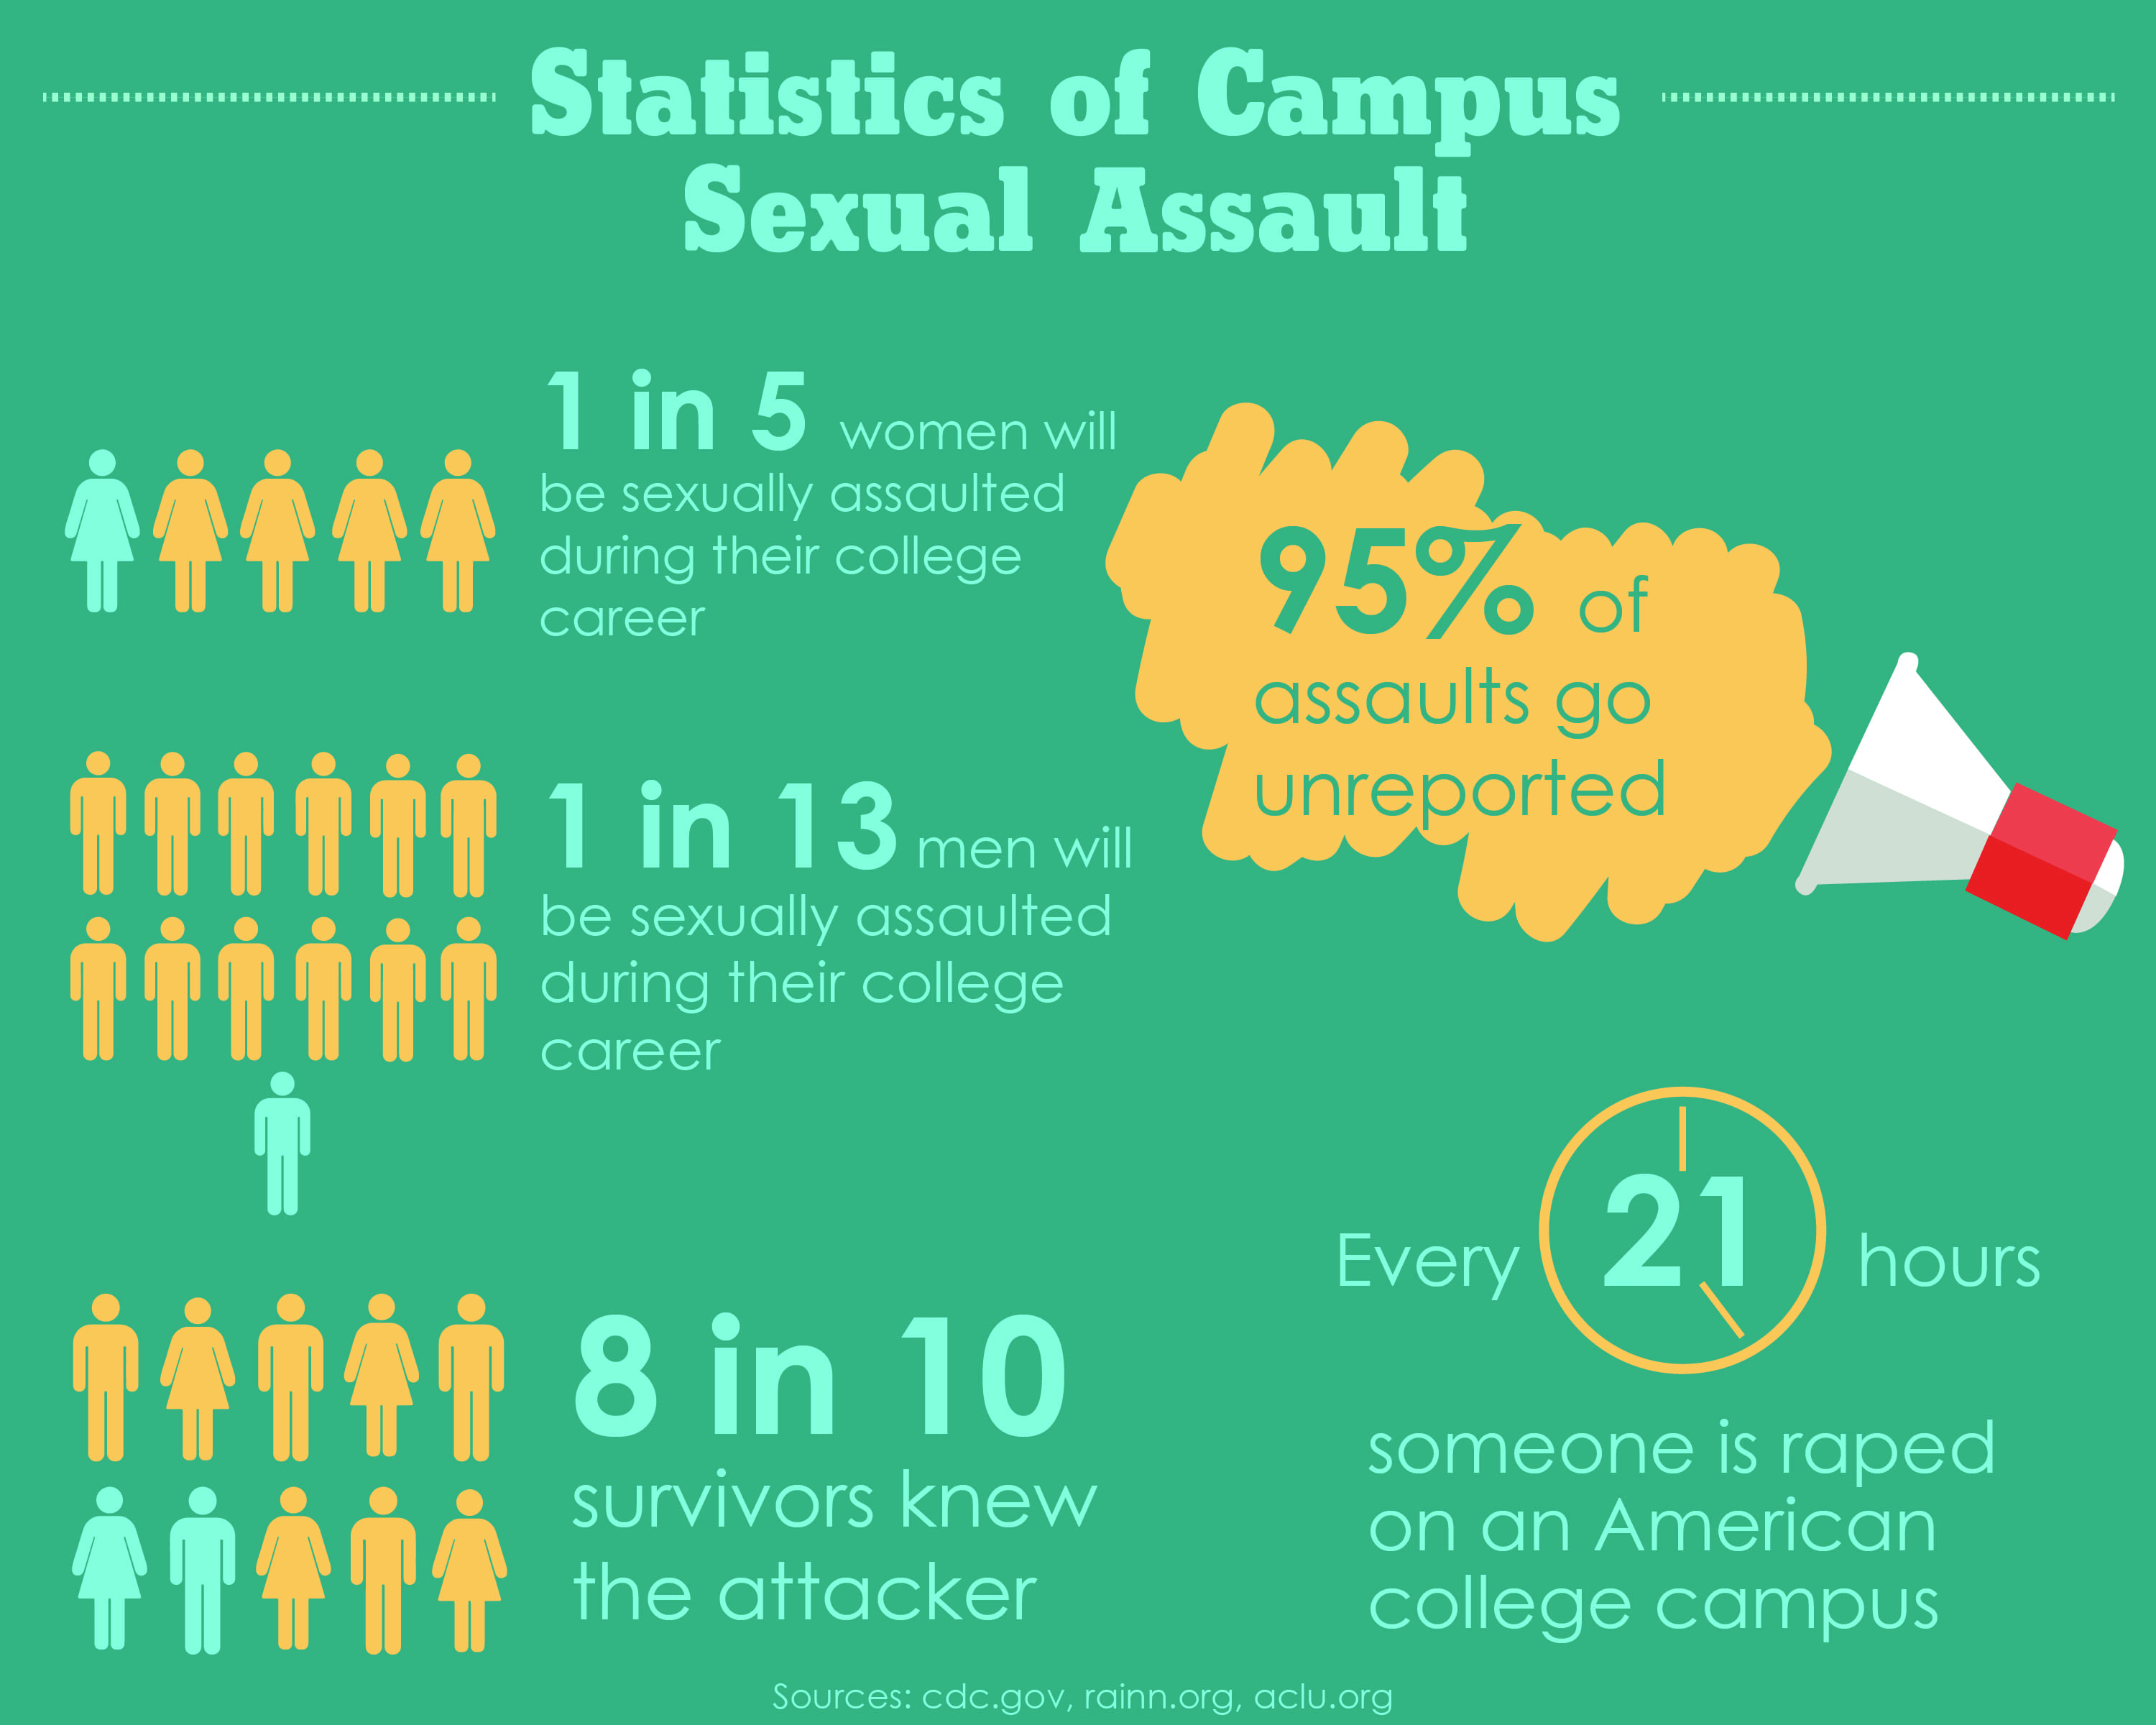 College campus sexual assault statistics pic 27